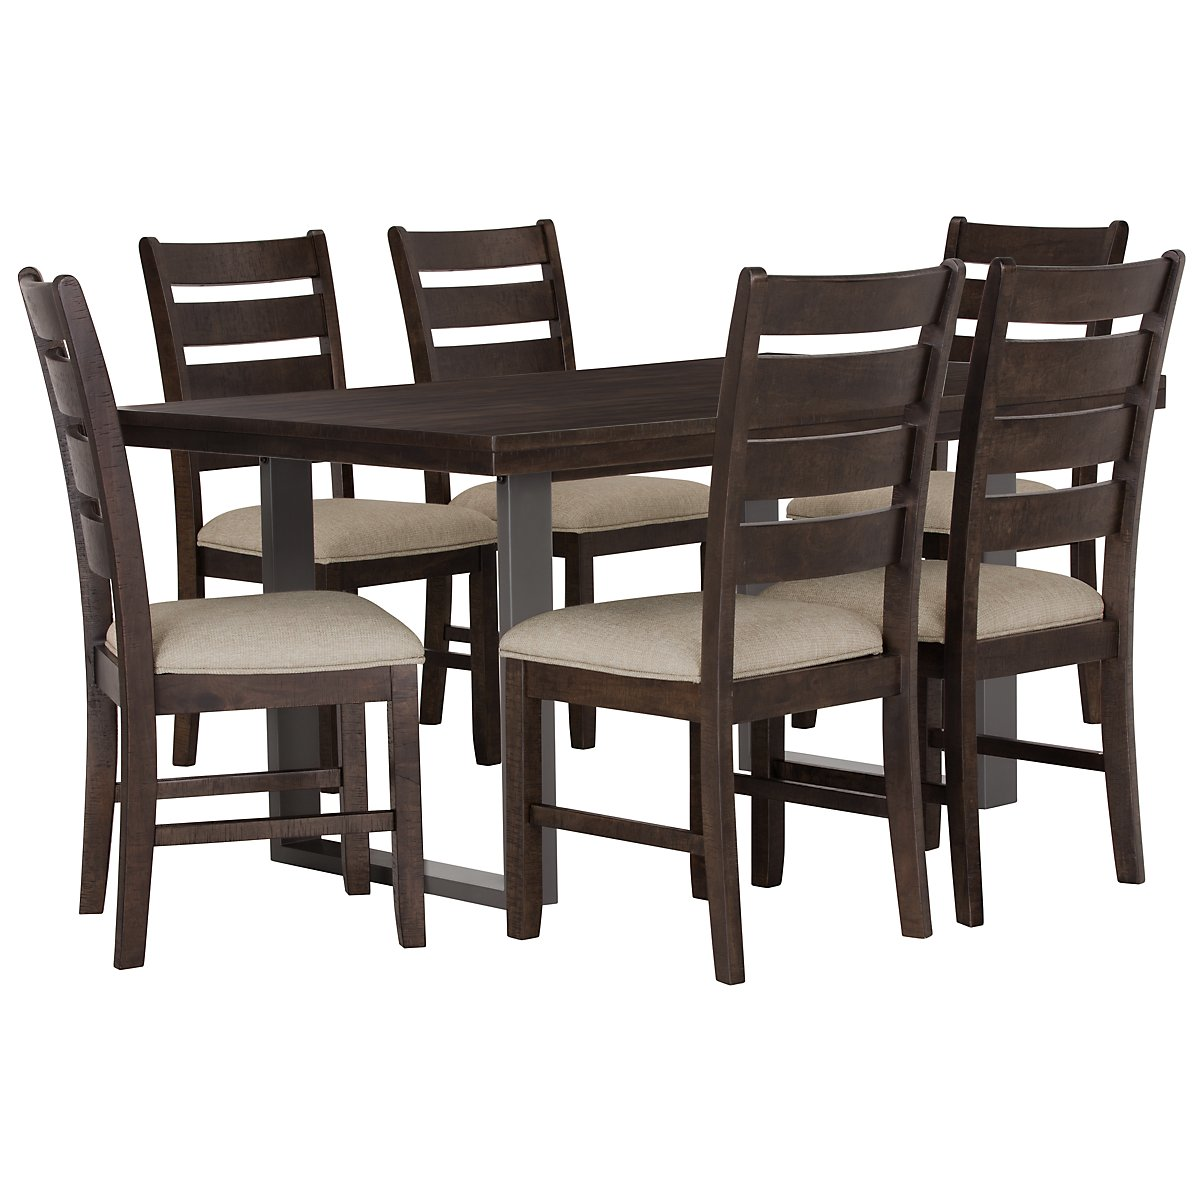 Sawyer Dark Tone Rect Table & 4 Wood Chairs